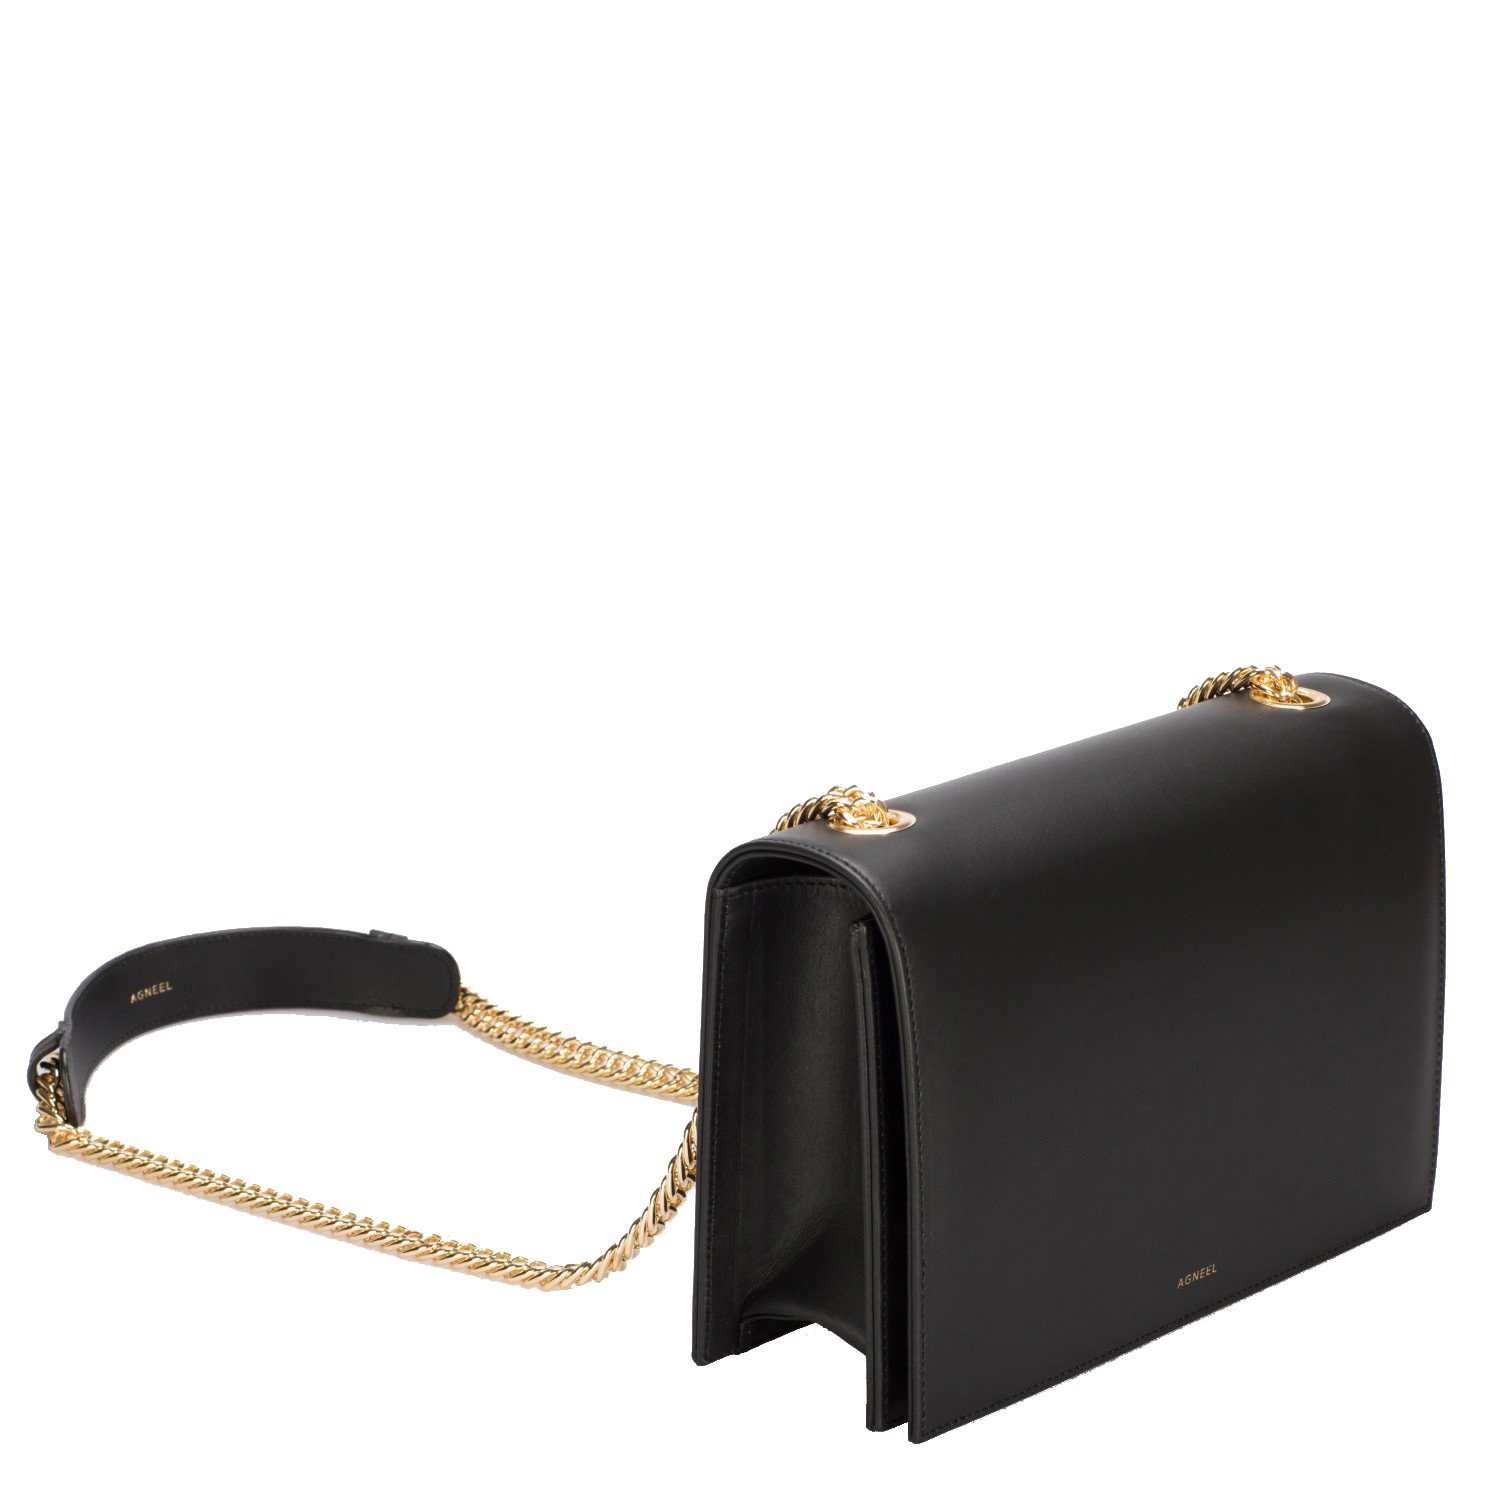 EVA SMALL SHOULDER BAG IN ITALIAN CALFSKIN